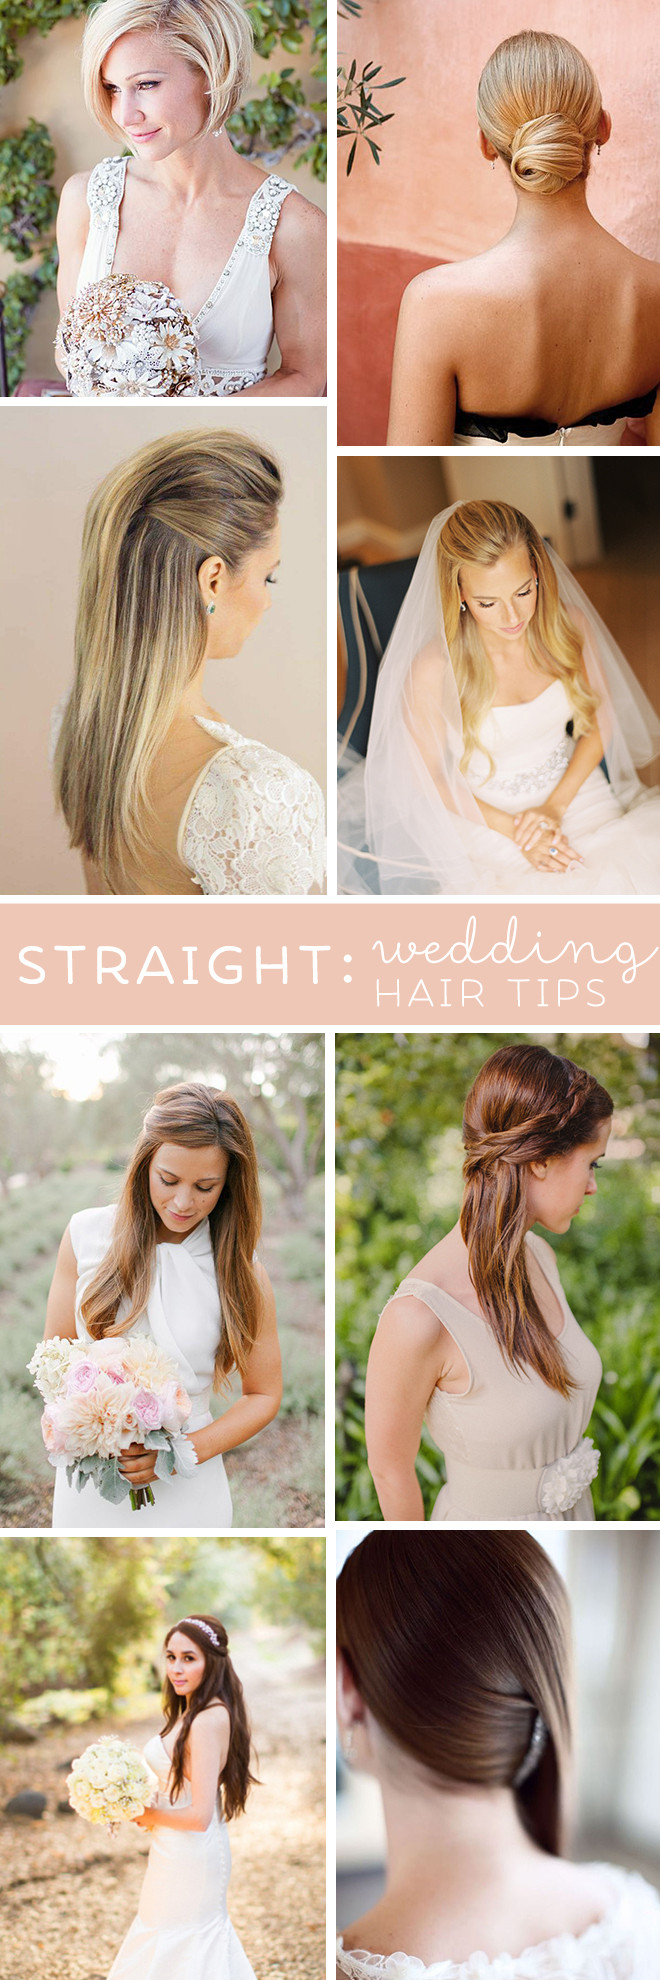 Straight Hairstyles For Weddings  Best Wedding Hair Tips For Wearing Straight Styles